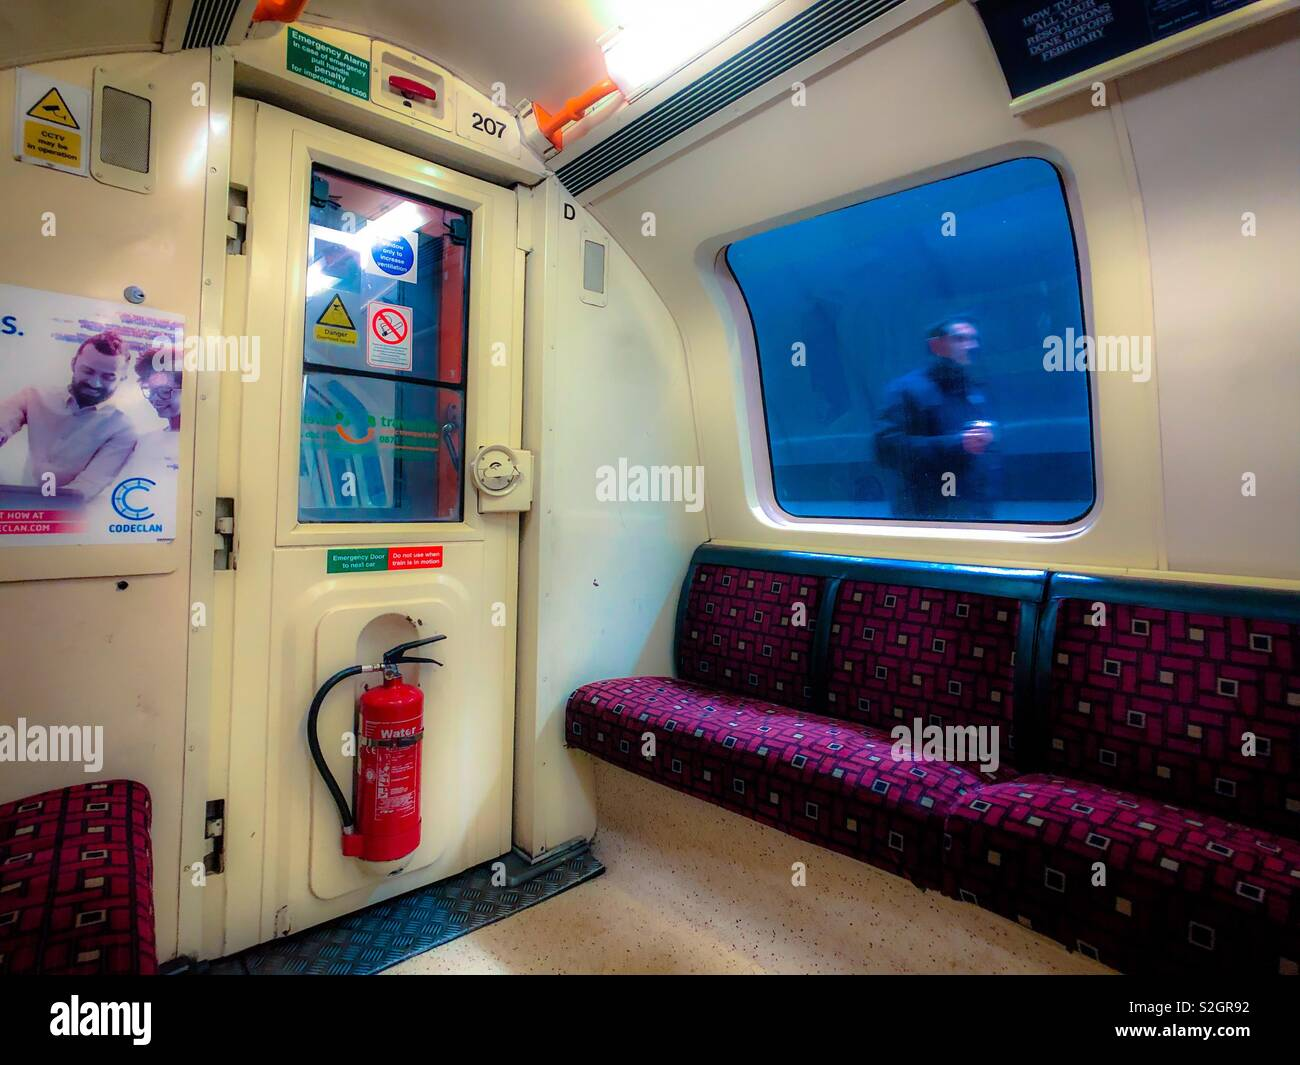 Interior and view from Glasgow subway carriage. Scotland. UK. - Stock Image